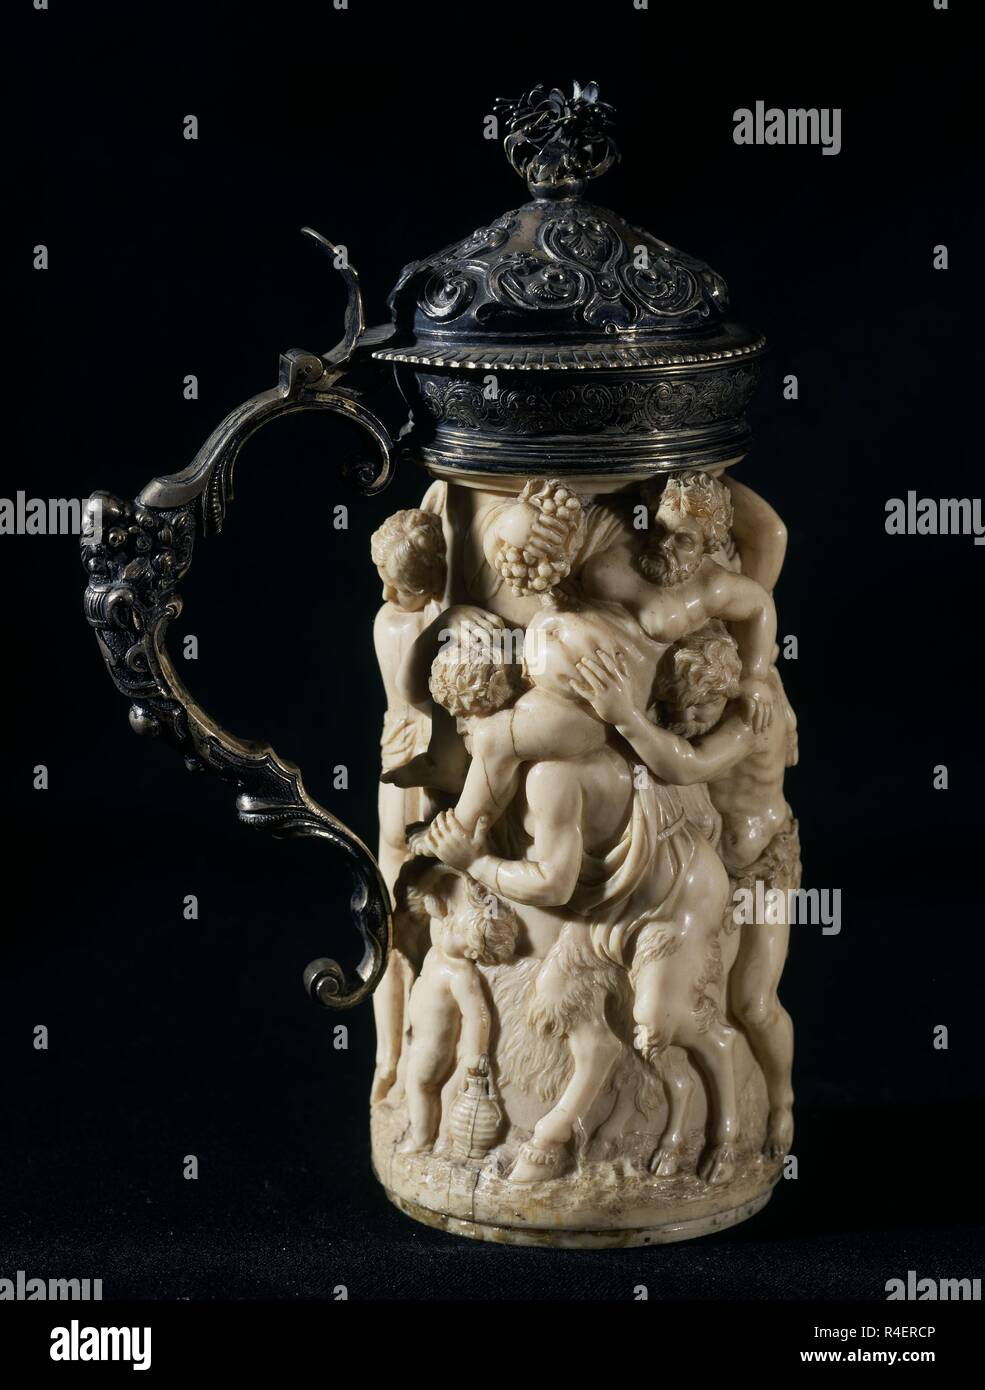 JARRA DE MARFIL CON ESCENA MITOLOGICA. Location: PRIVATE COLLECTION. Stock Photo